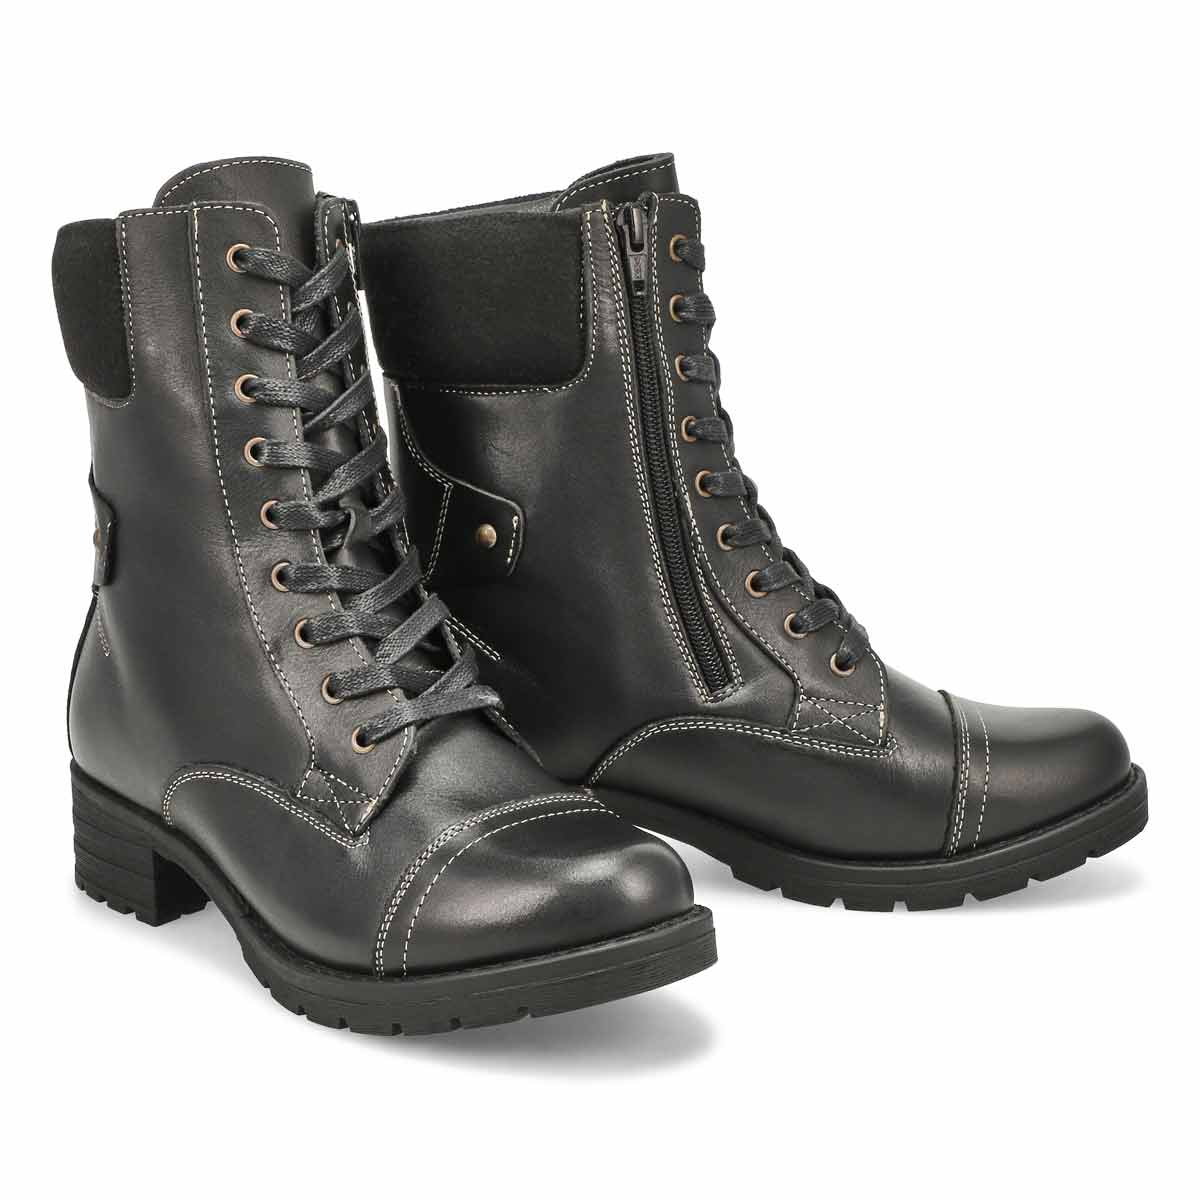 Lds DeeDee 3 black combat boot